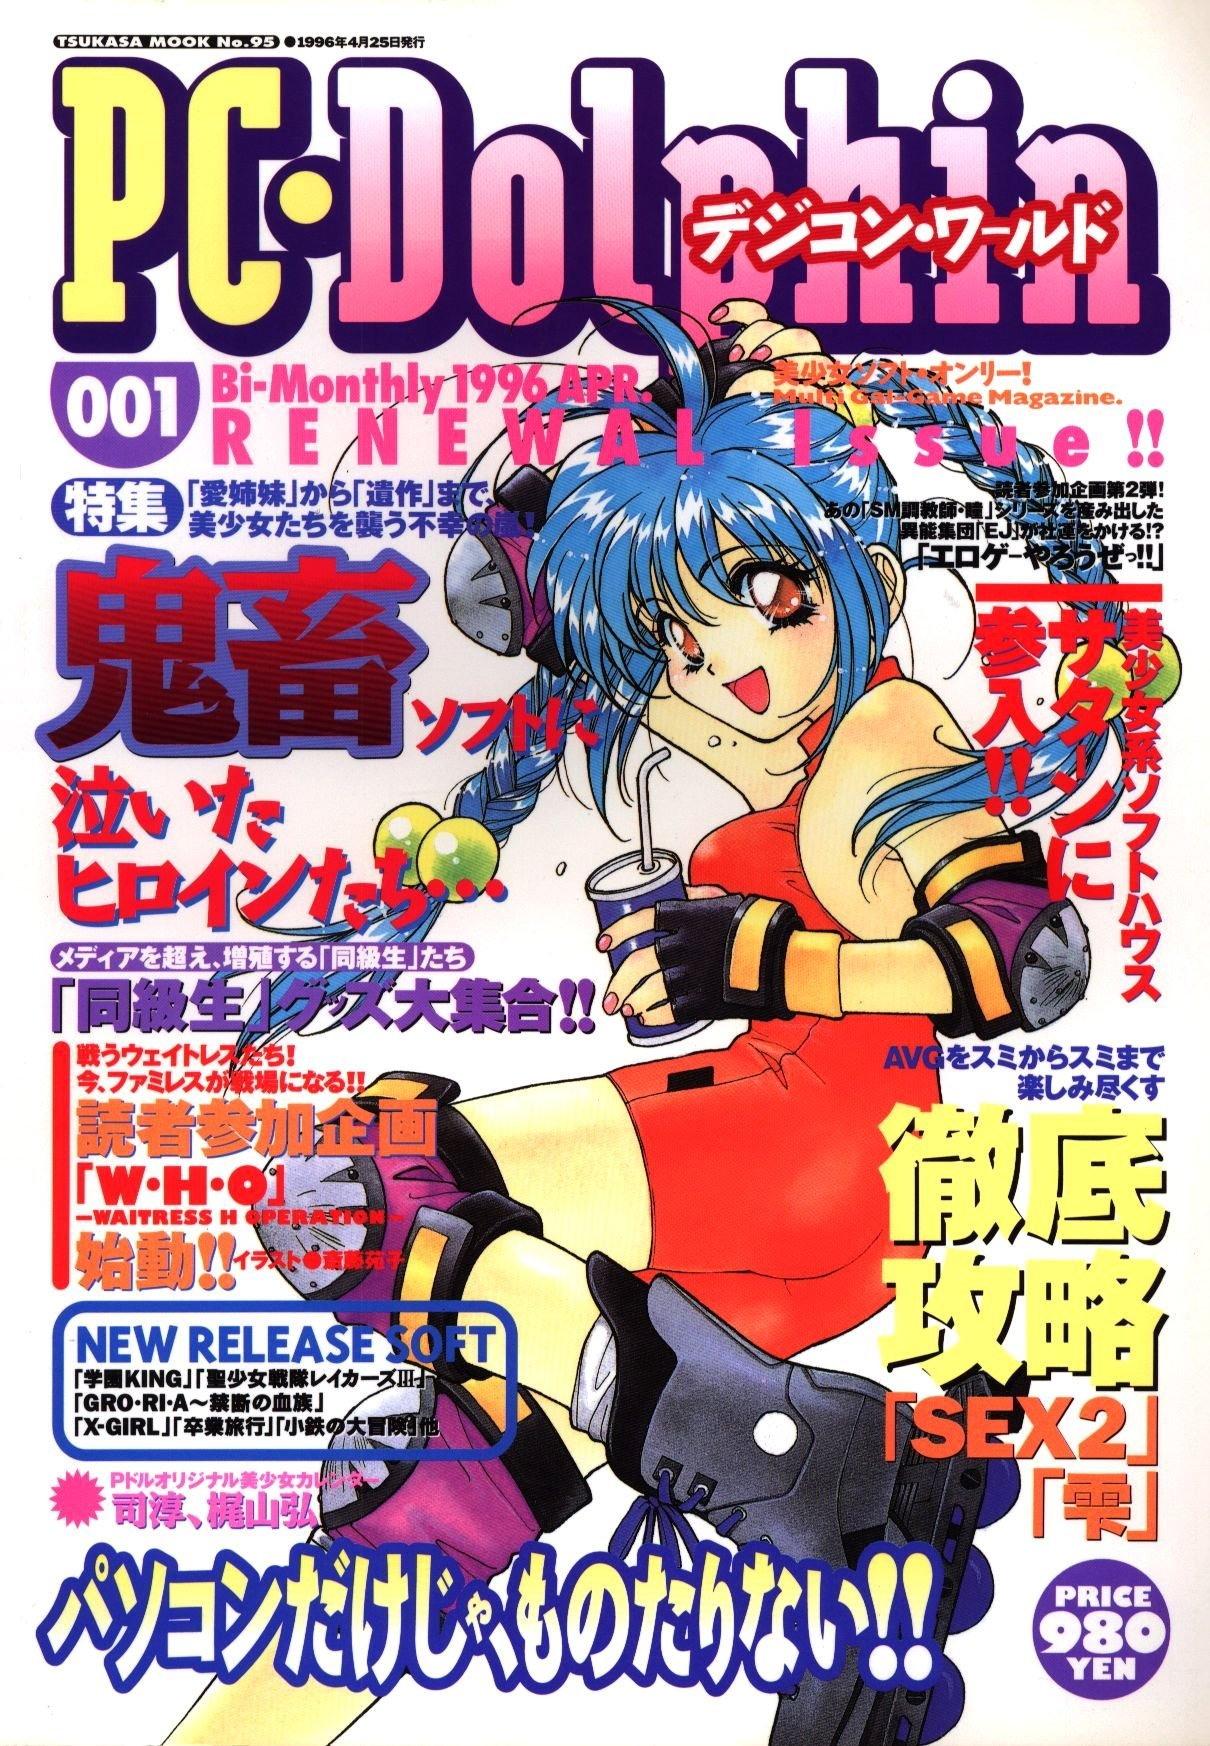 PC Dolphin Digicom World Vol.1 (April 1996)